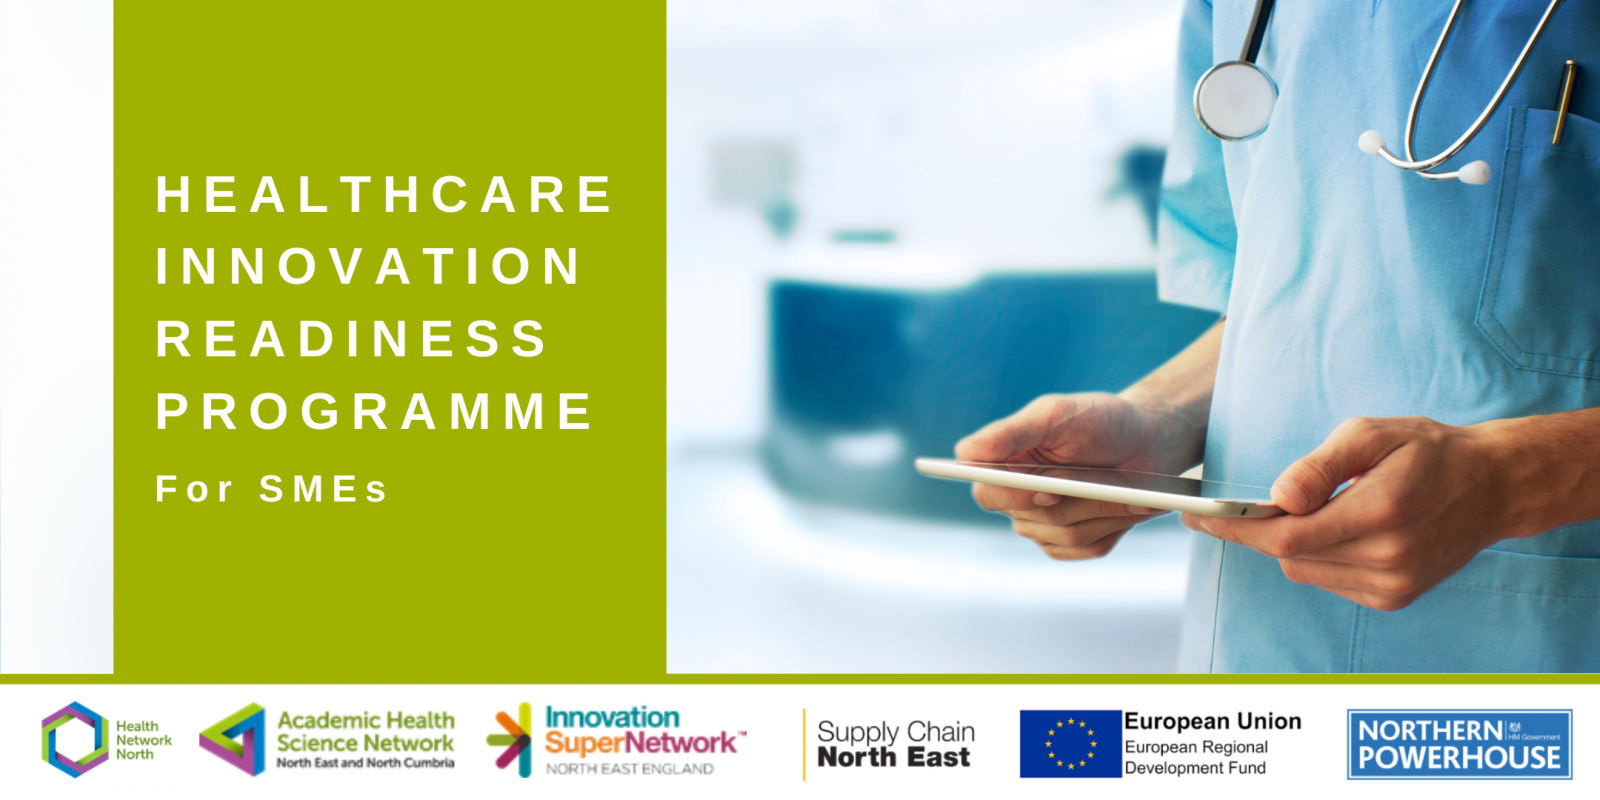 Healthcare Innovation Readiness Programme for SMEs